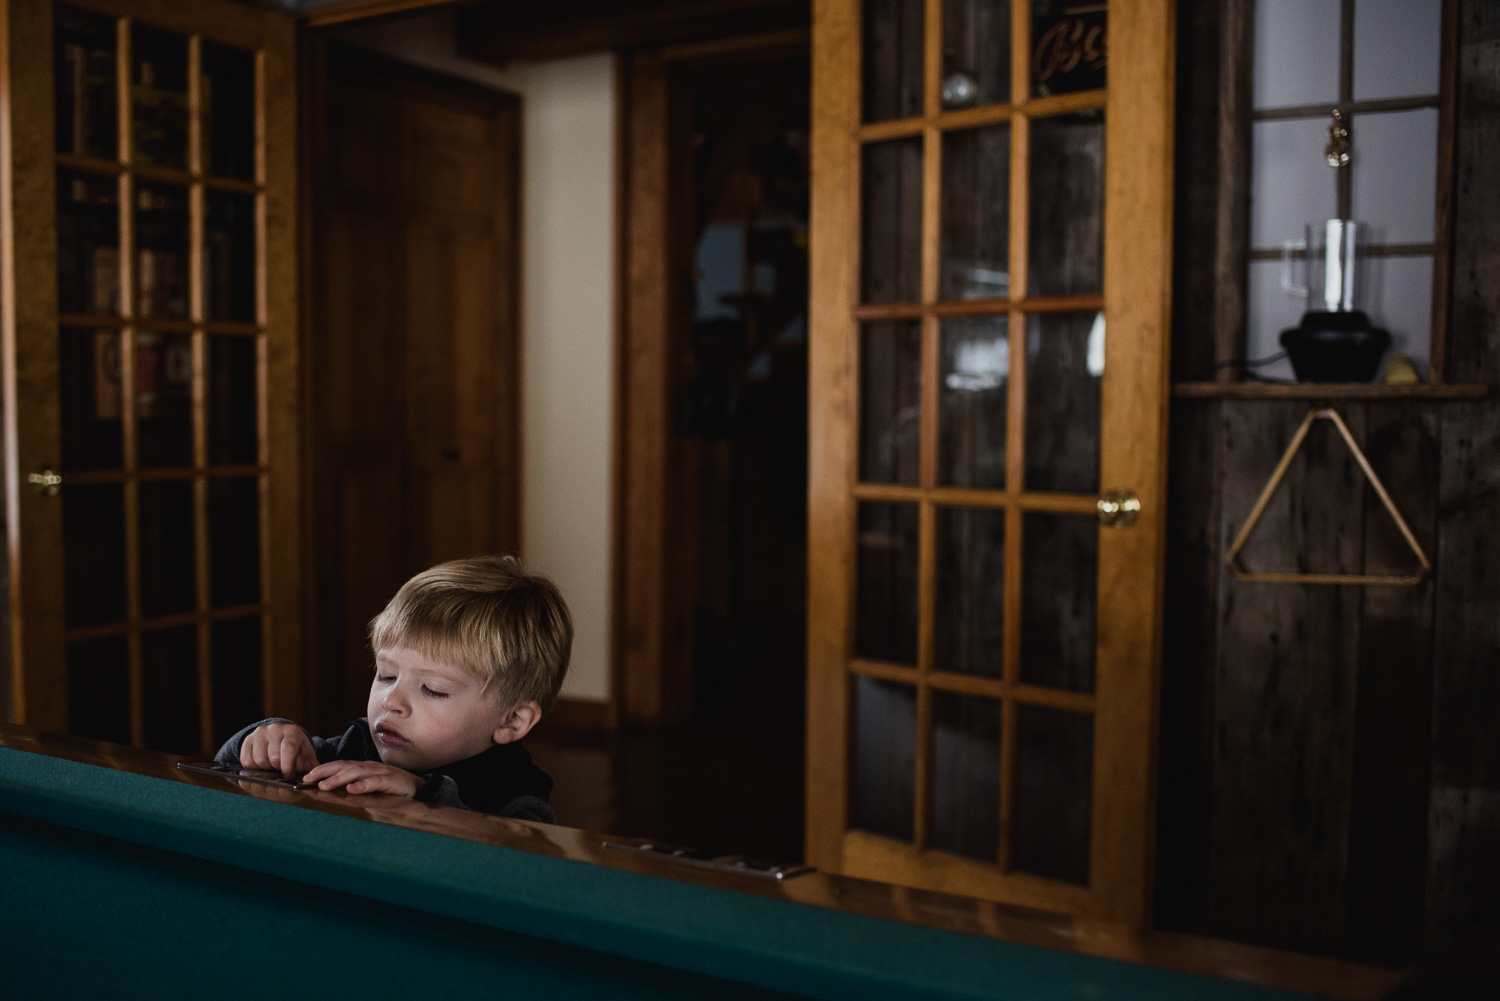 Little boy reaching up to pool table.